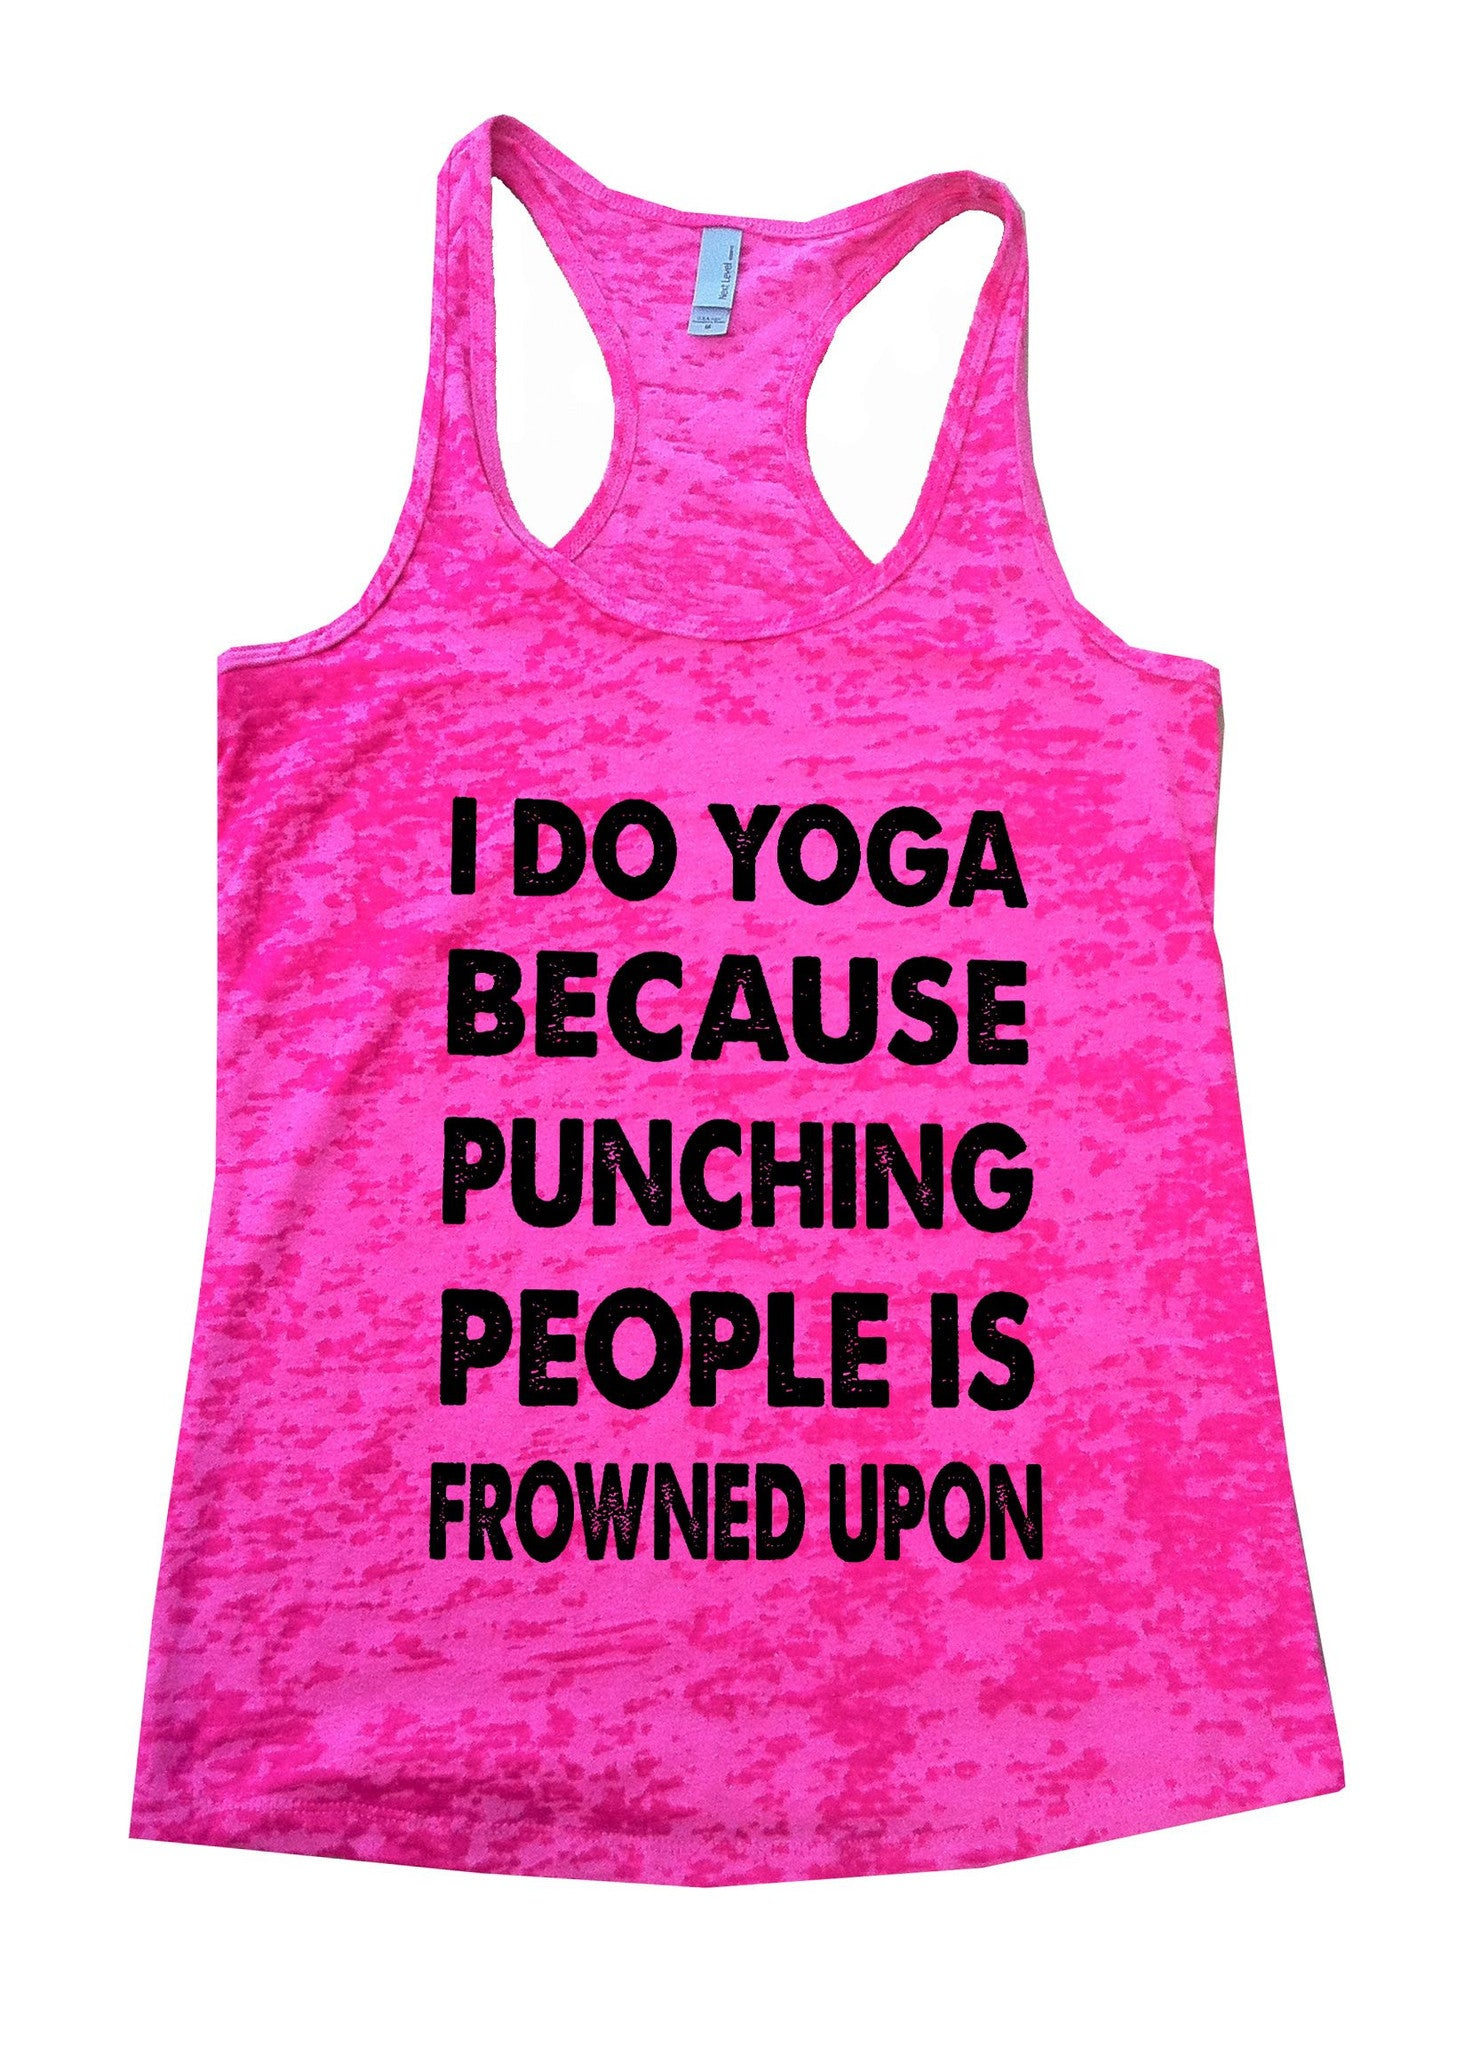 I Do Yoga Because Punching People Is Frowned Upon Burnout Tank Top By BurnoutTankTops.com - 685 - Funny Shirts Tank Tops Burnouts and Triblends  - 6